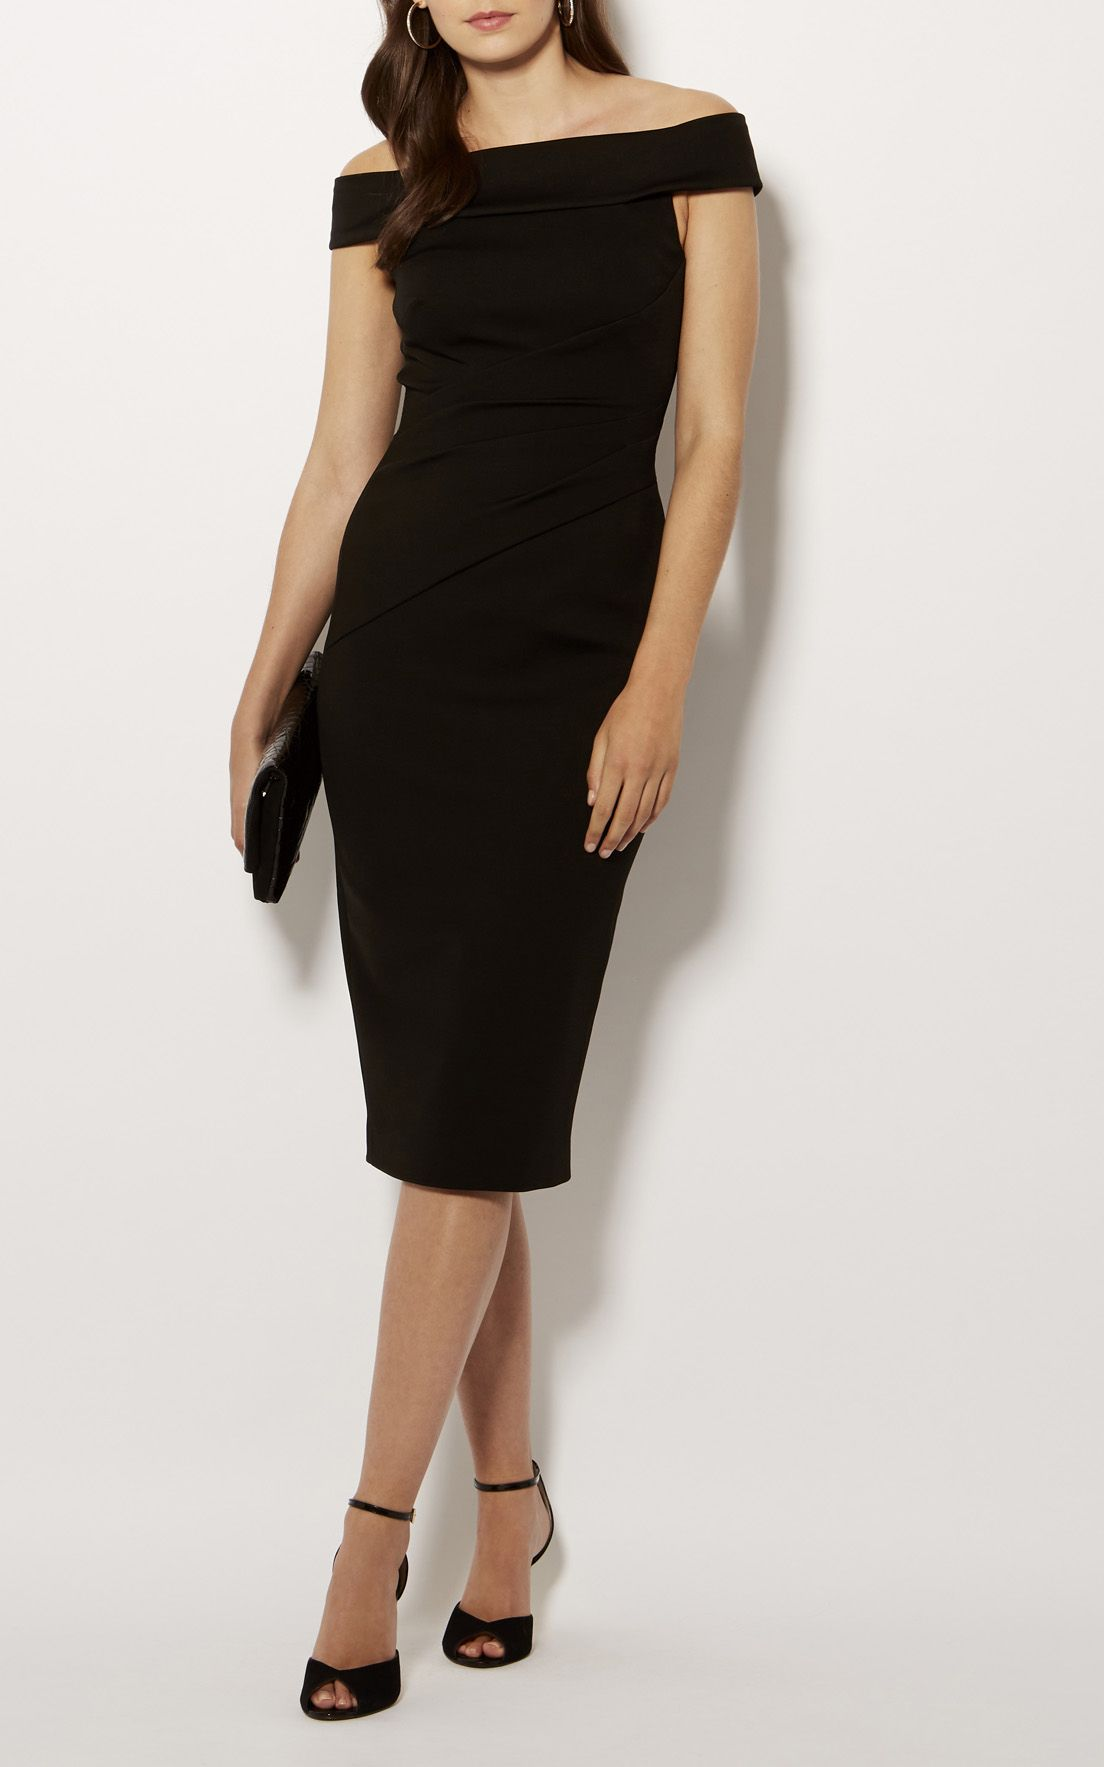 Karen millen black dress 2018 super